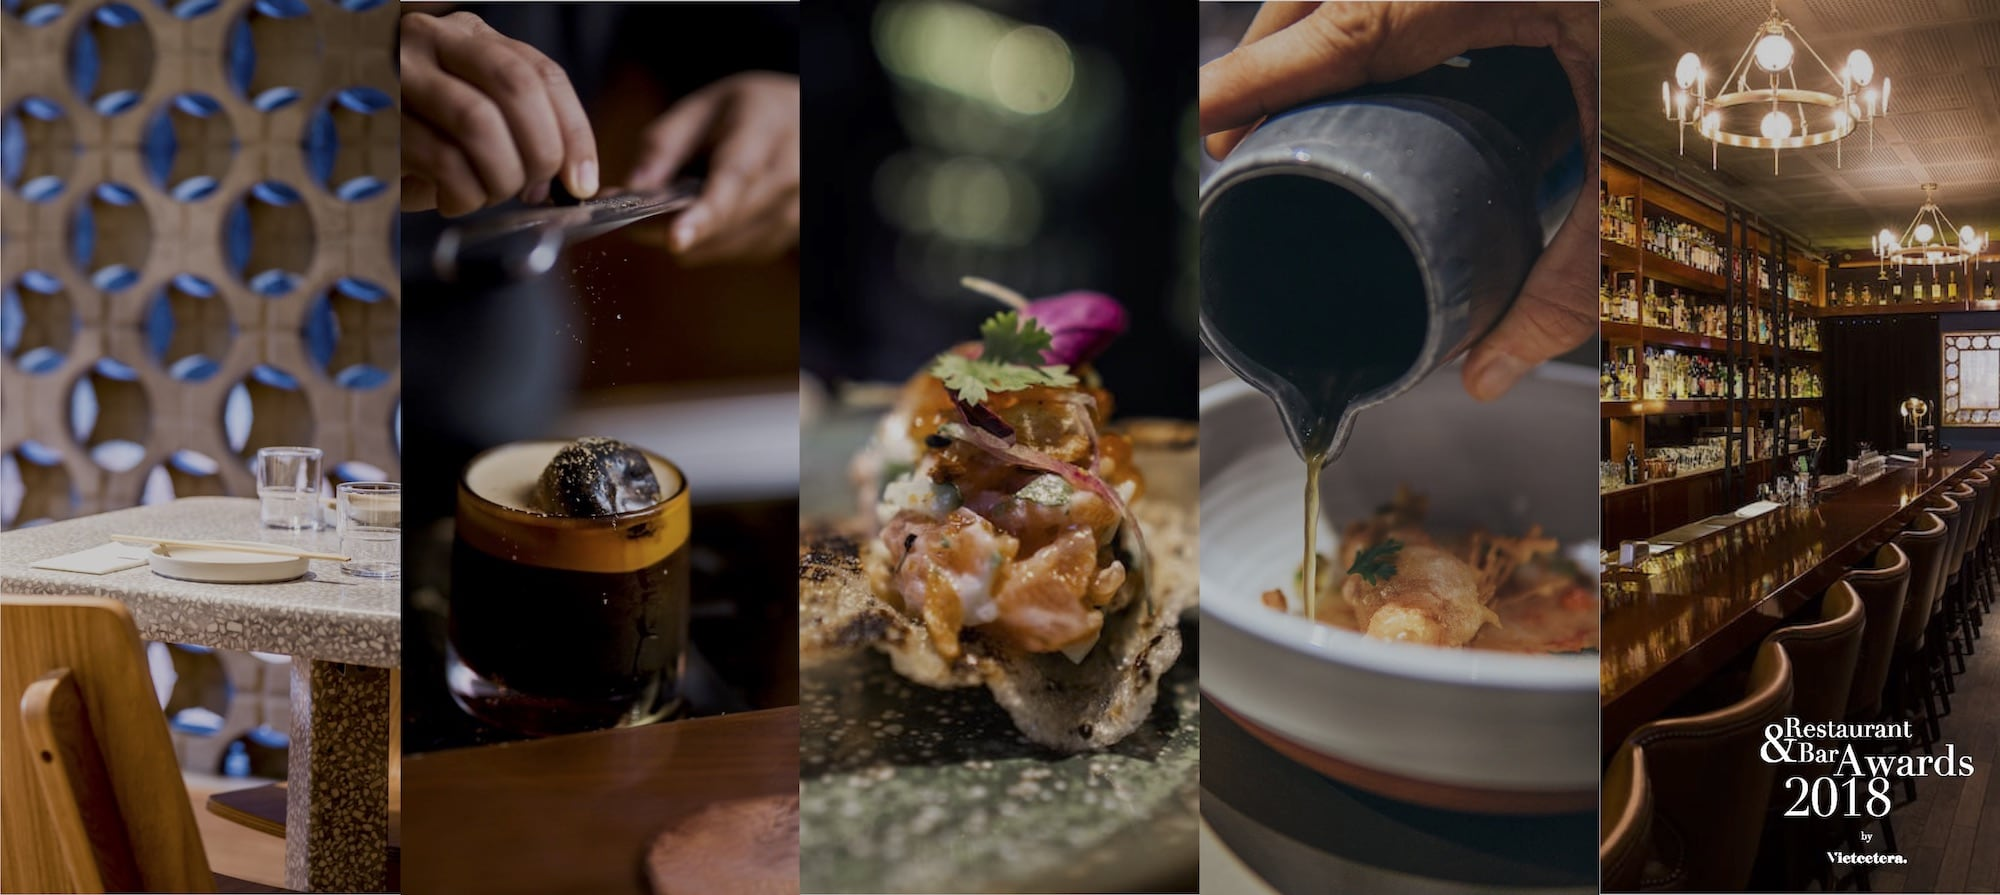 Vietcetera's Restaurant & Bar Awards 2018: The Nominees In Full